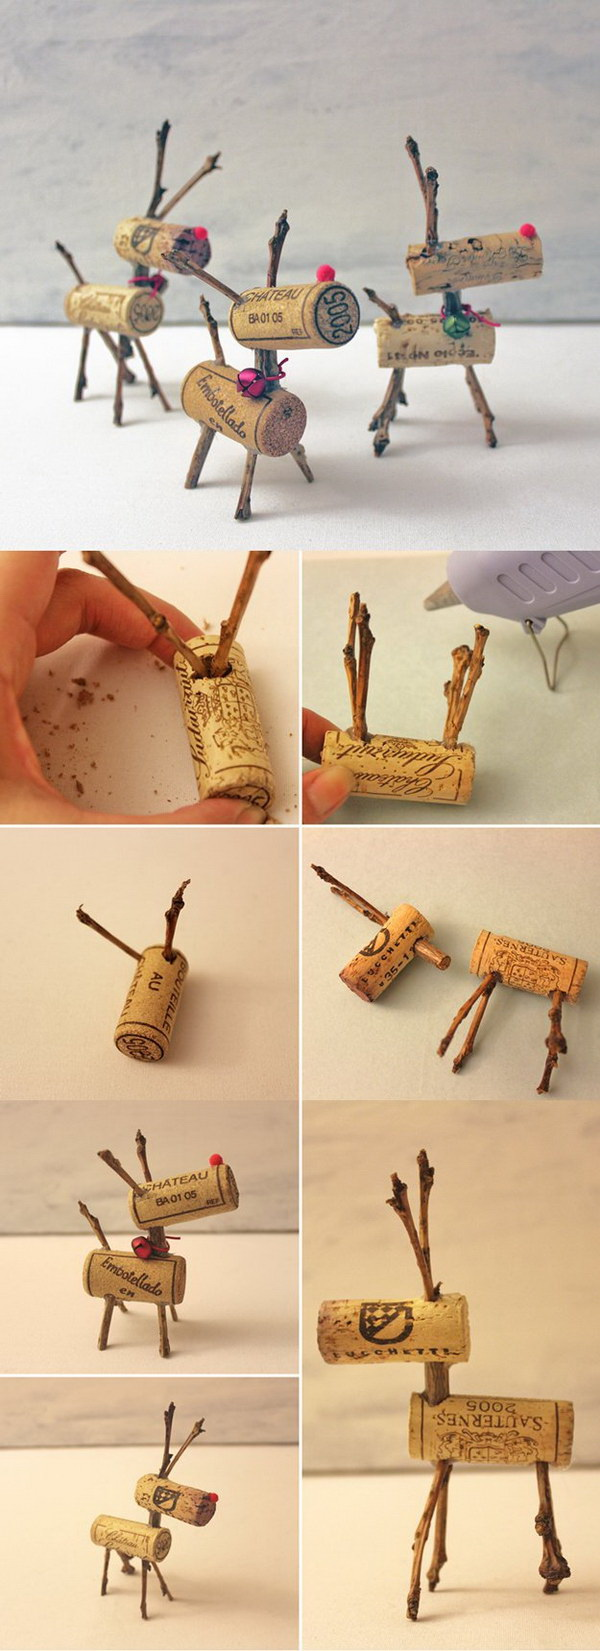 DIY Wine Cork Reindeers Ornaments. A great way to do with all those leftover wine corks!